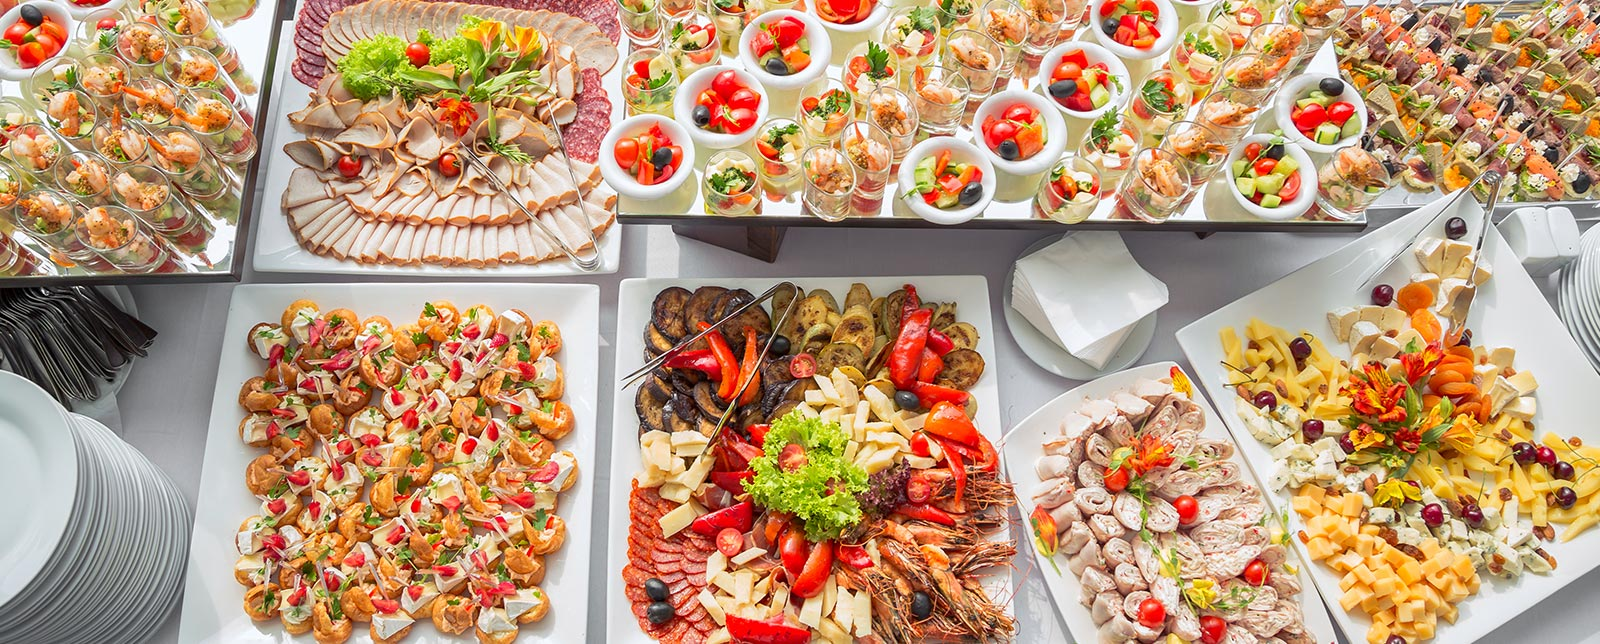 Corporate Catering Melbourne Wedding Buffet Catering Companies Melbourne